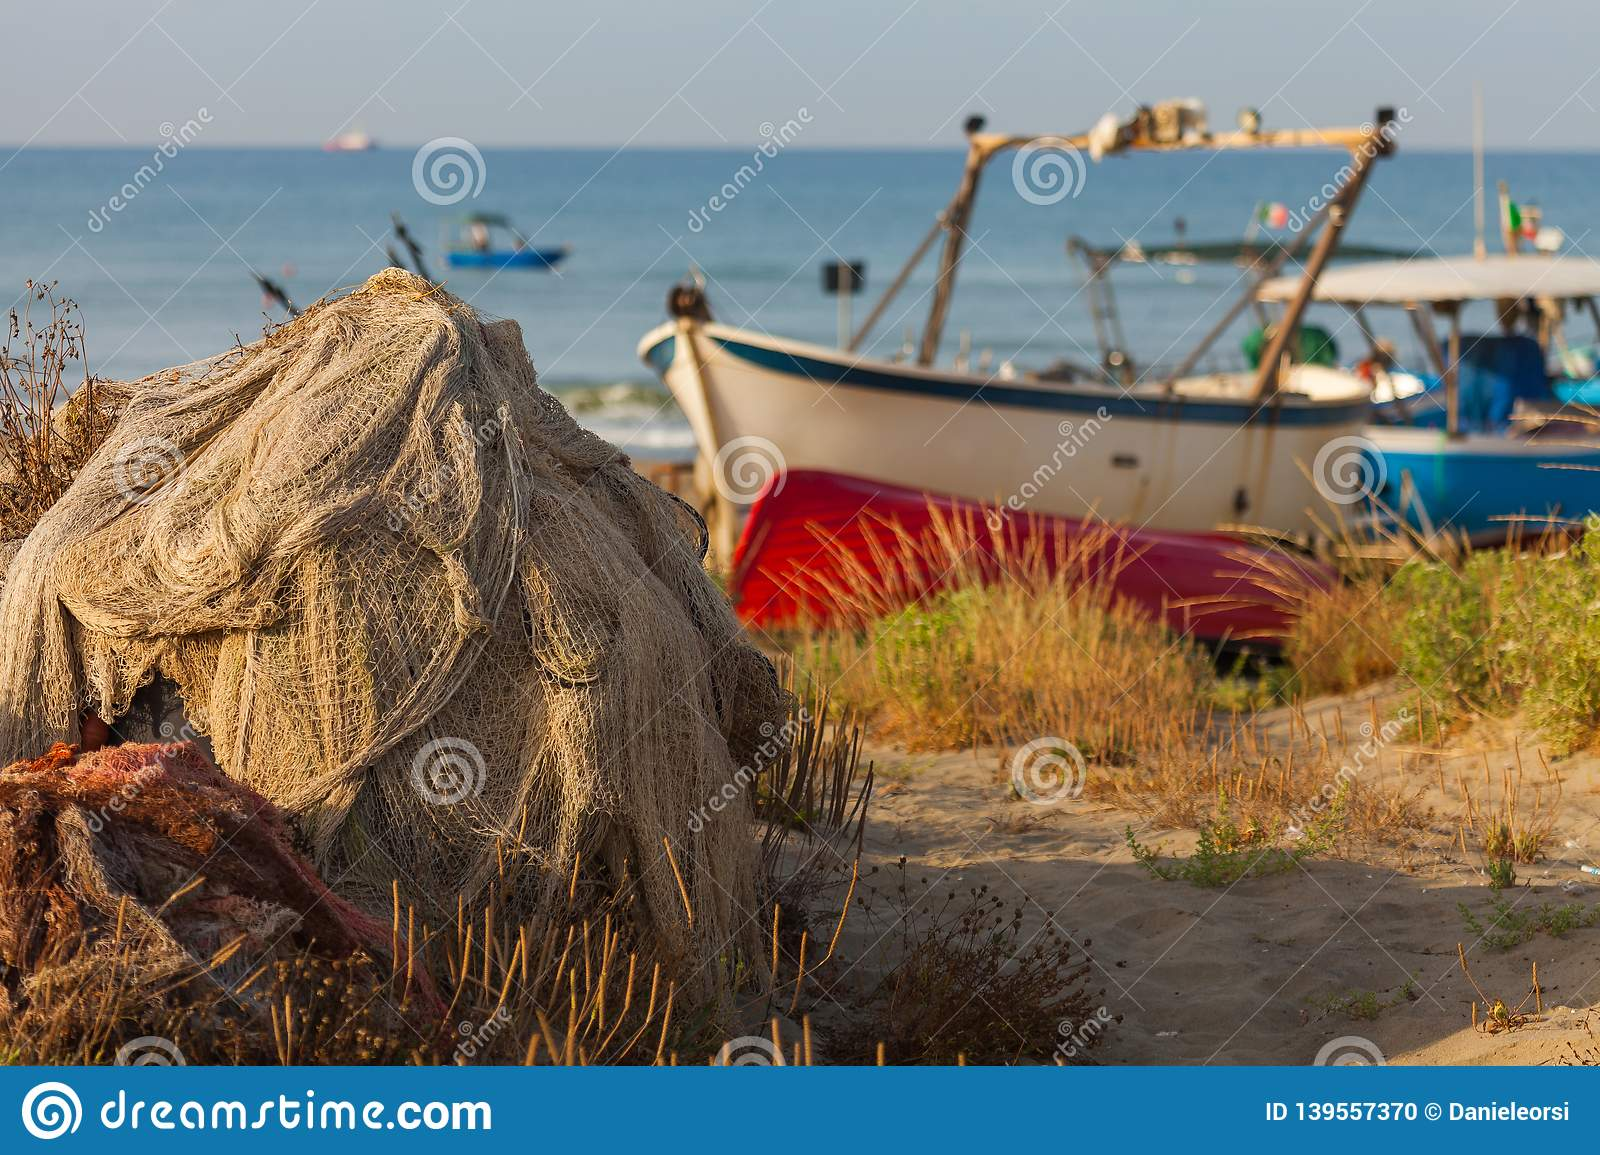 A view of a fishing net in front of the boat on the beach. Beautiful calm sea and water during an hot summer day